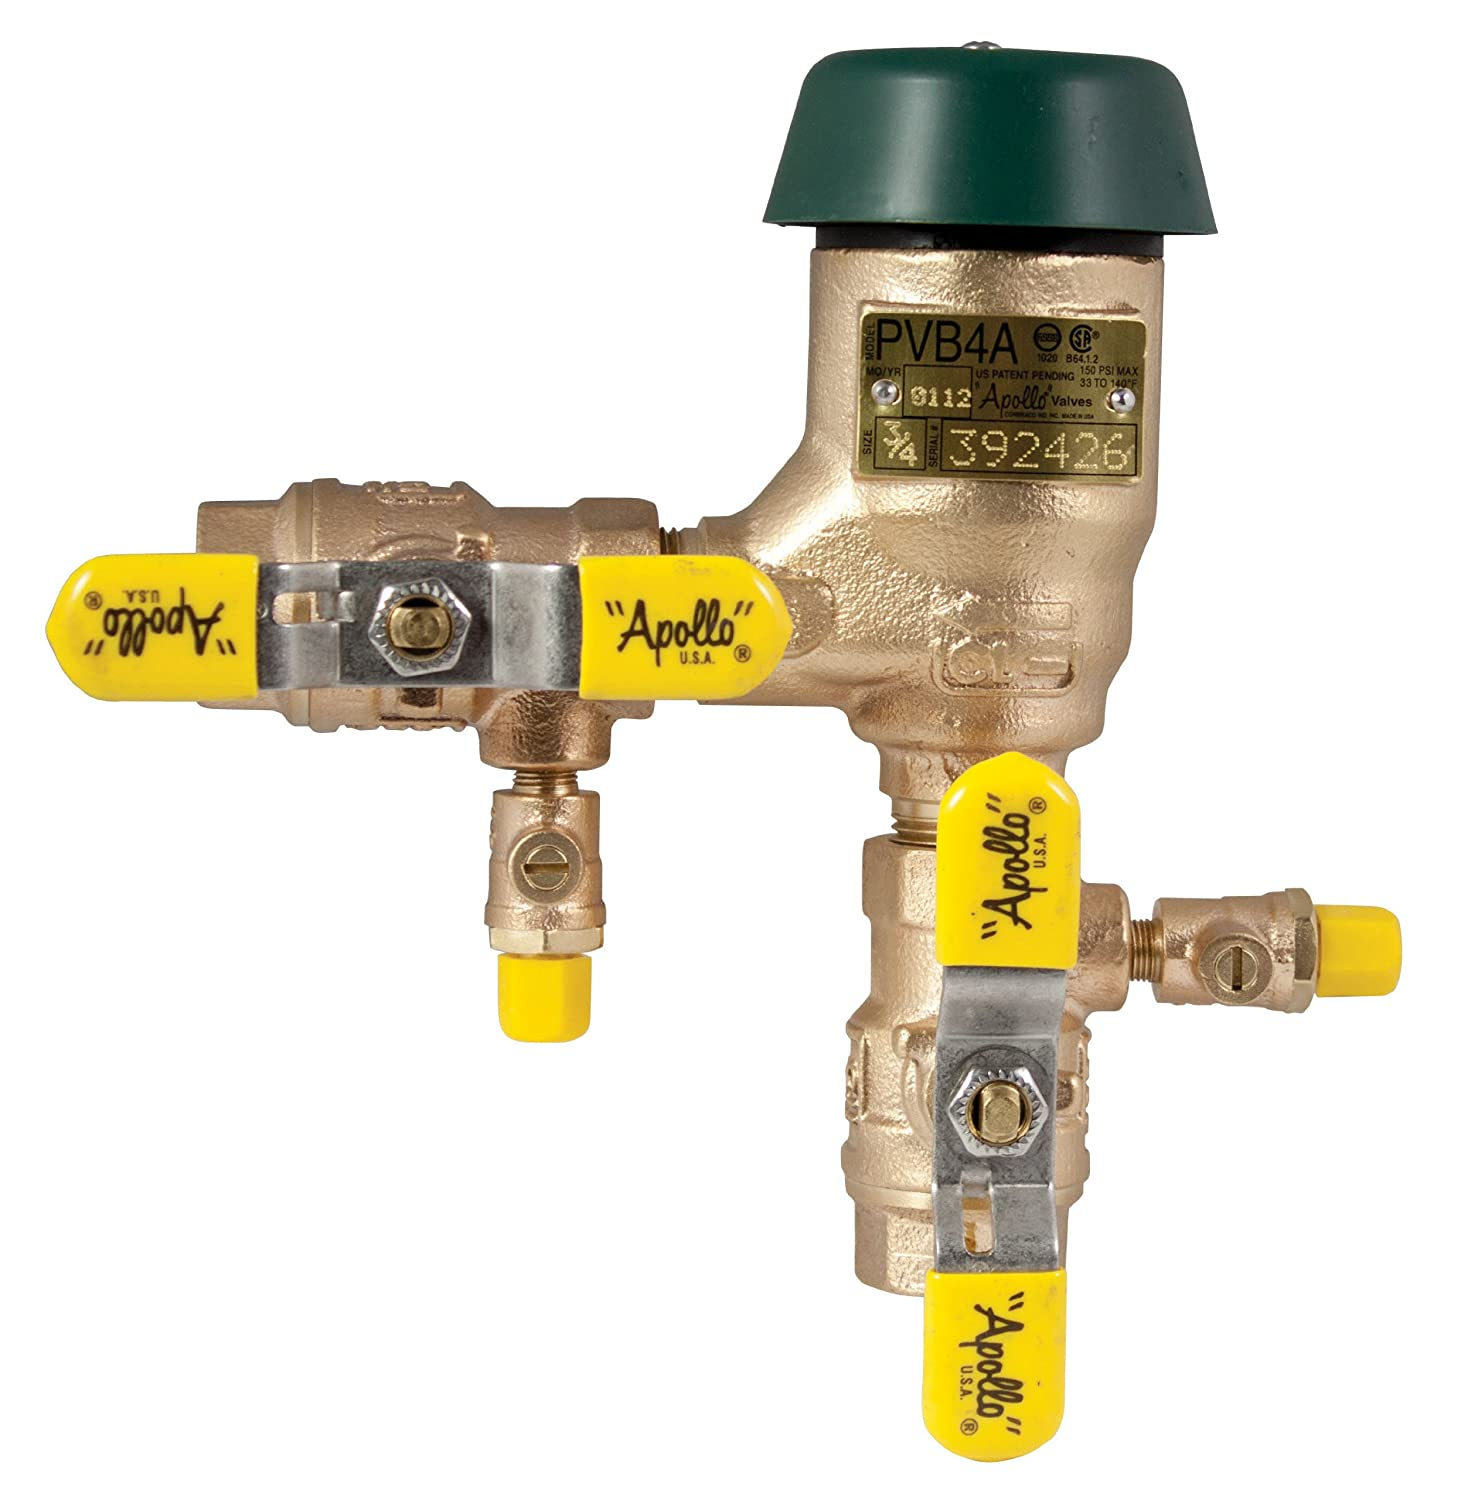 Apollo 4A50402F Bronze Freeze Resistant Pressure Vacuum Breaker with Ball Valve and SAE Threaded Test Cocks 3//4 Size